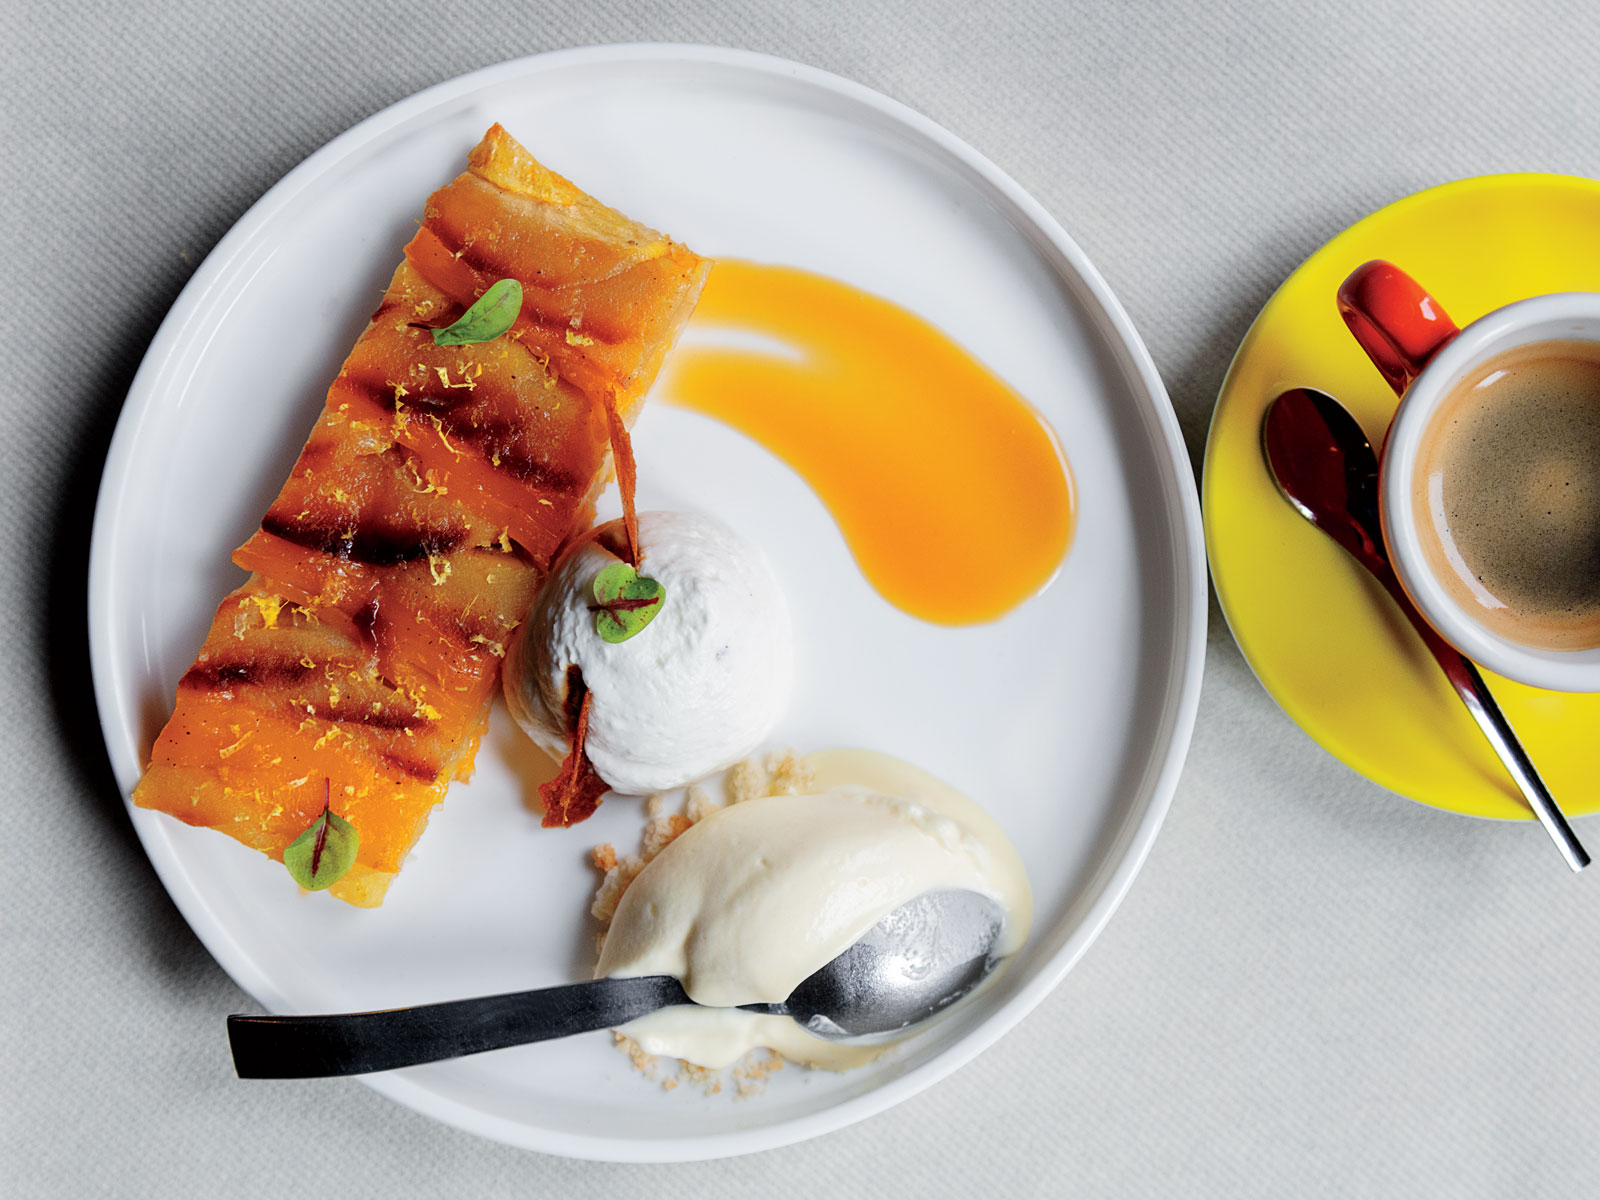 Mango Apple Tarte Tatin with Caramel Sauce